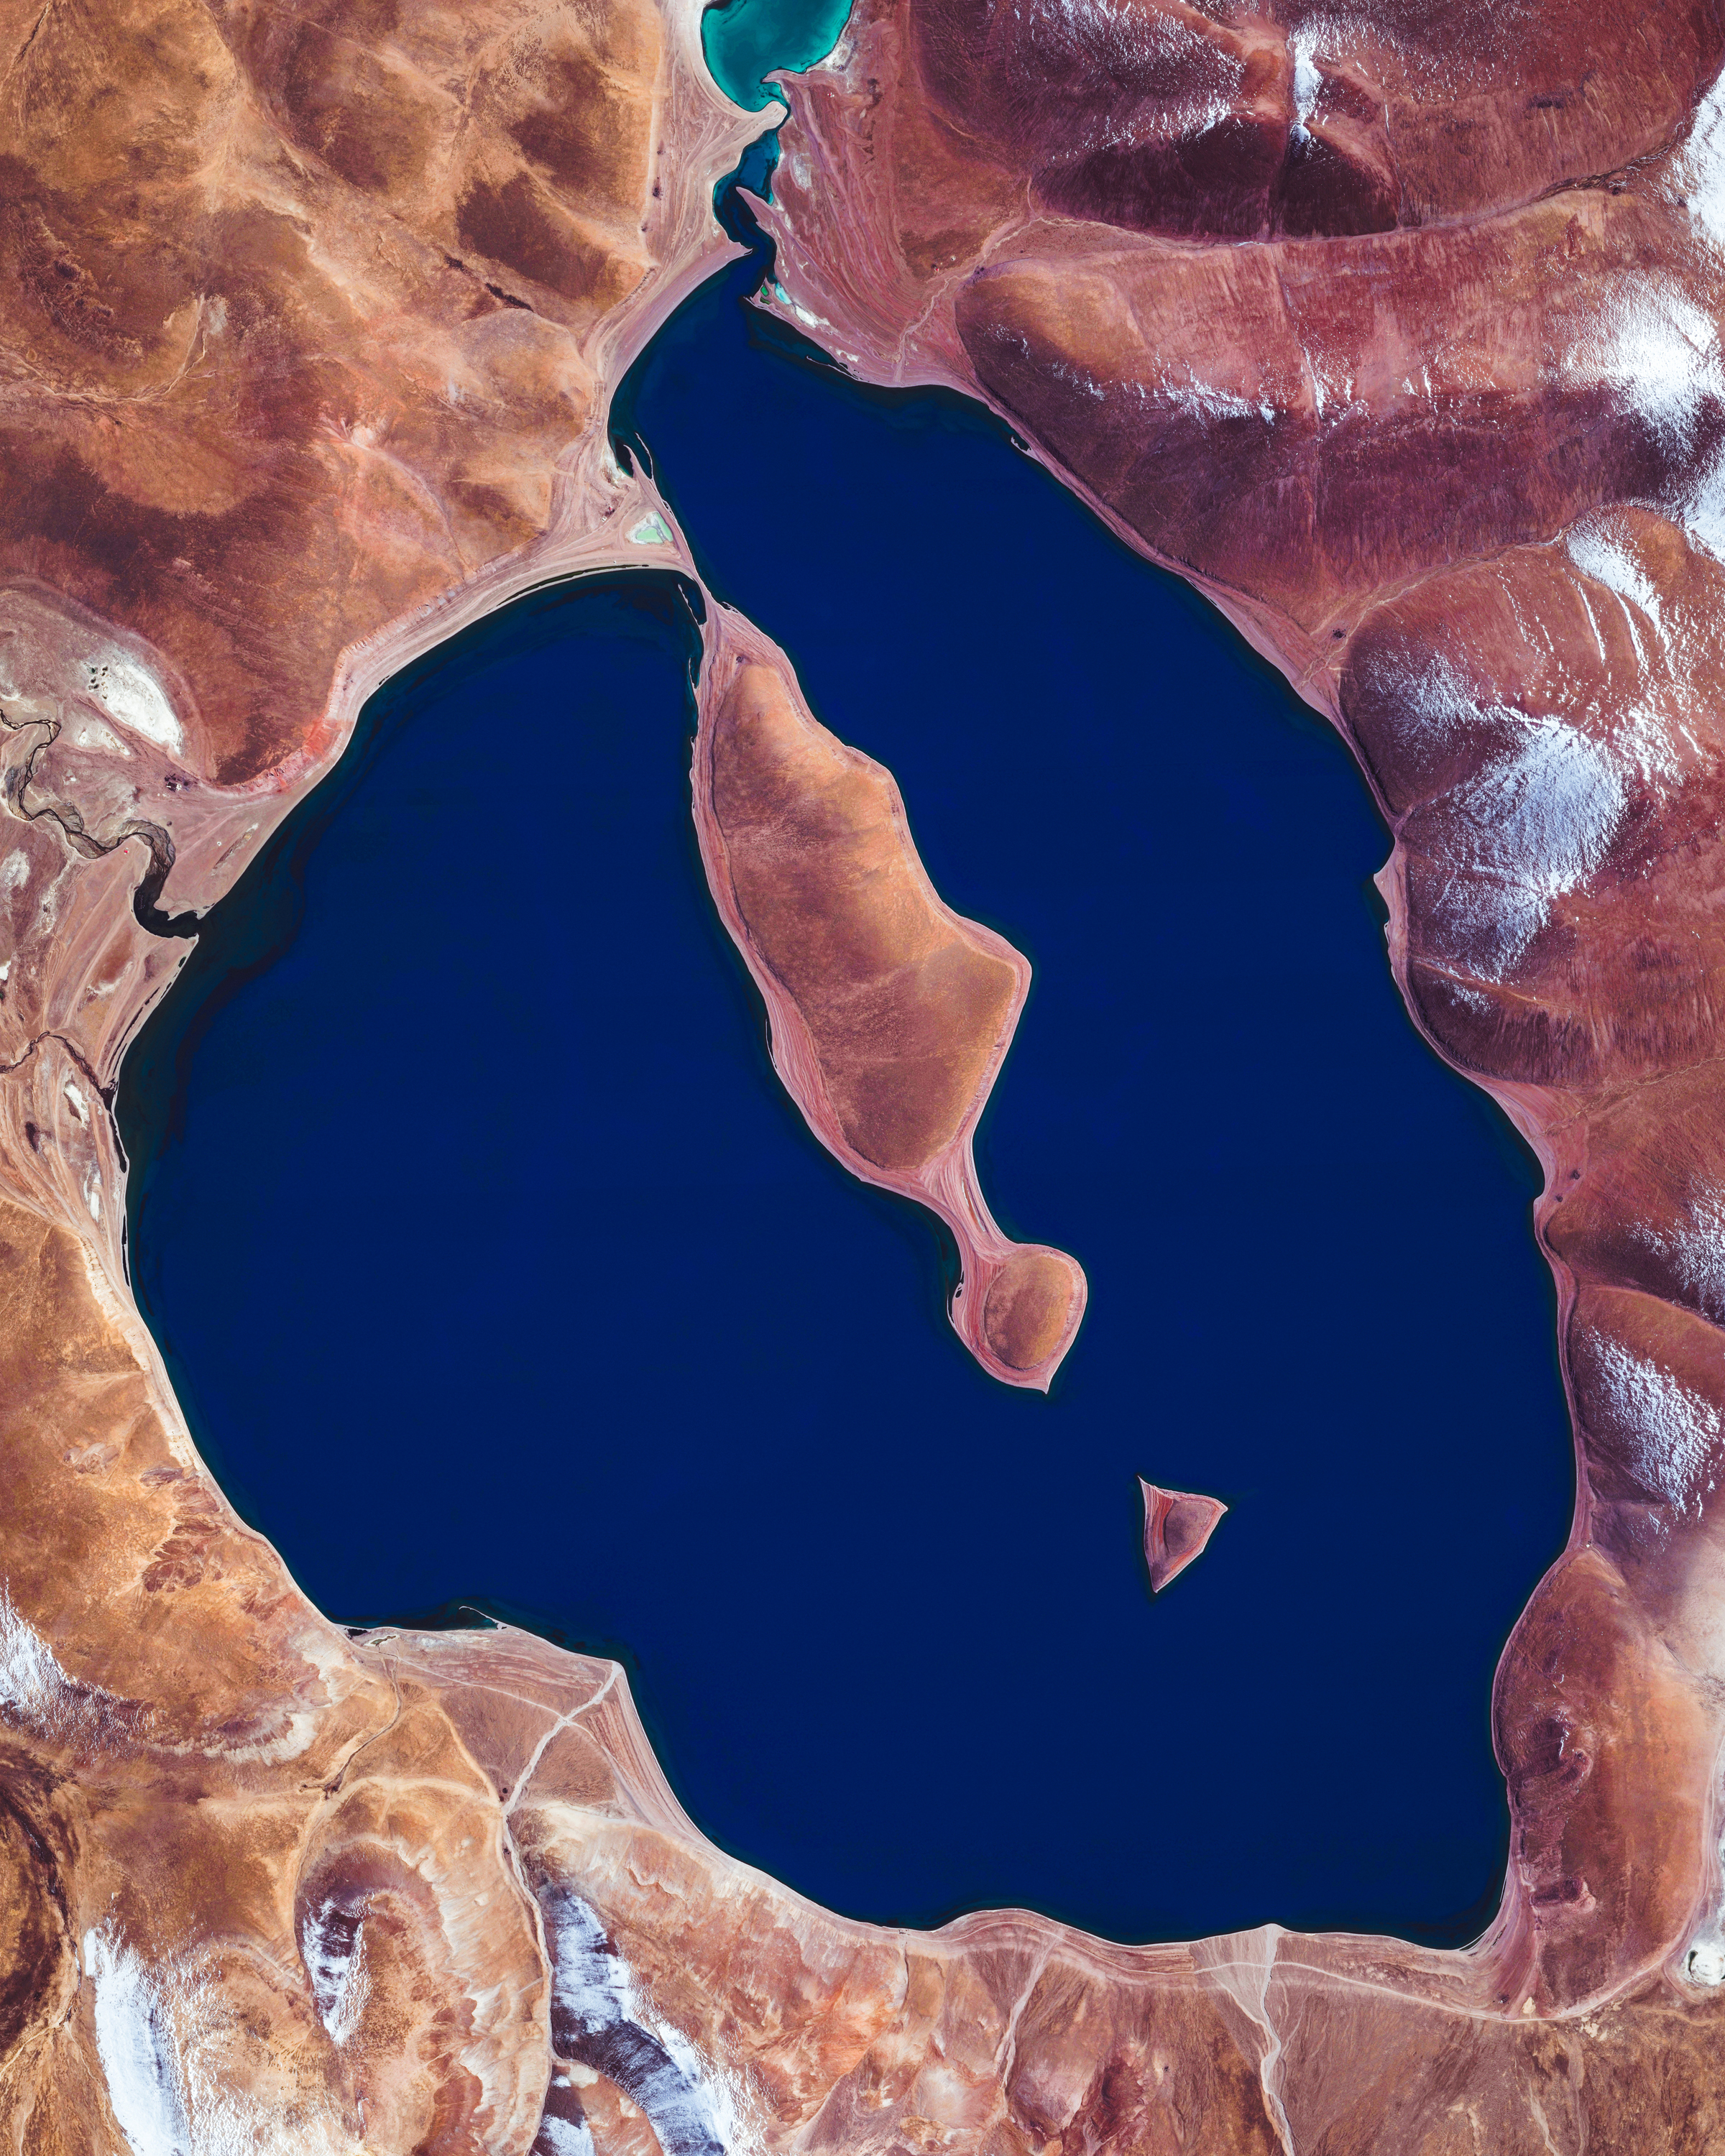 """The ultramarine waters of Lake Cuowomo add color to the landscape in Ngamring County, a remote section of the Tibet Autonomous Region in China. This lake, among others in Tibet, were favorite sites of NASA Astronaut Scott Kelly during his """"Year in Space"""" mission in 2015-16.  29°47'39.2""""N, 86°56'27.0""""E  Source imagery: DigitalGlobe"""